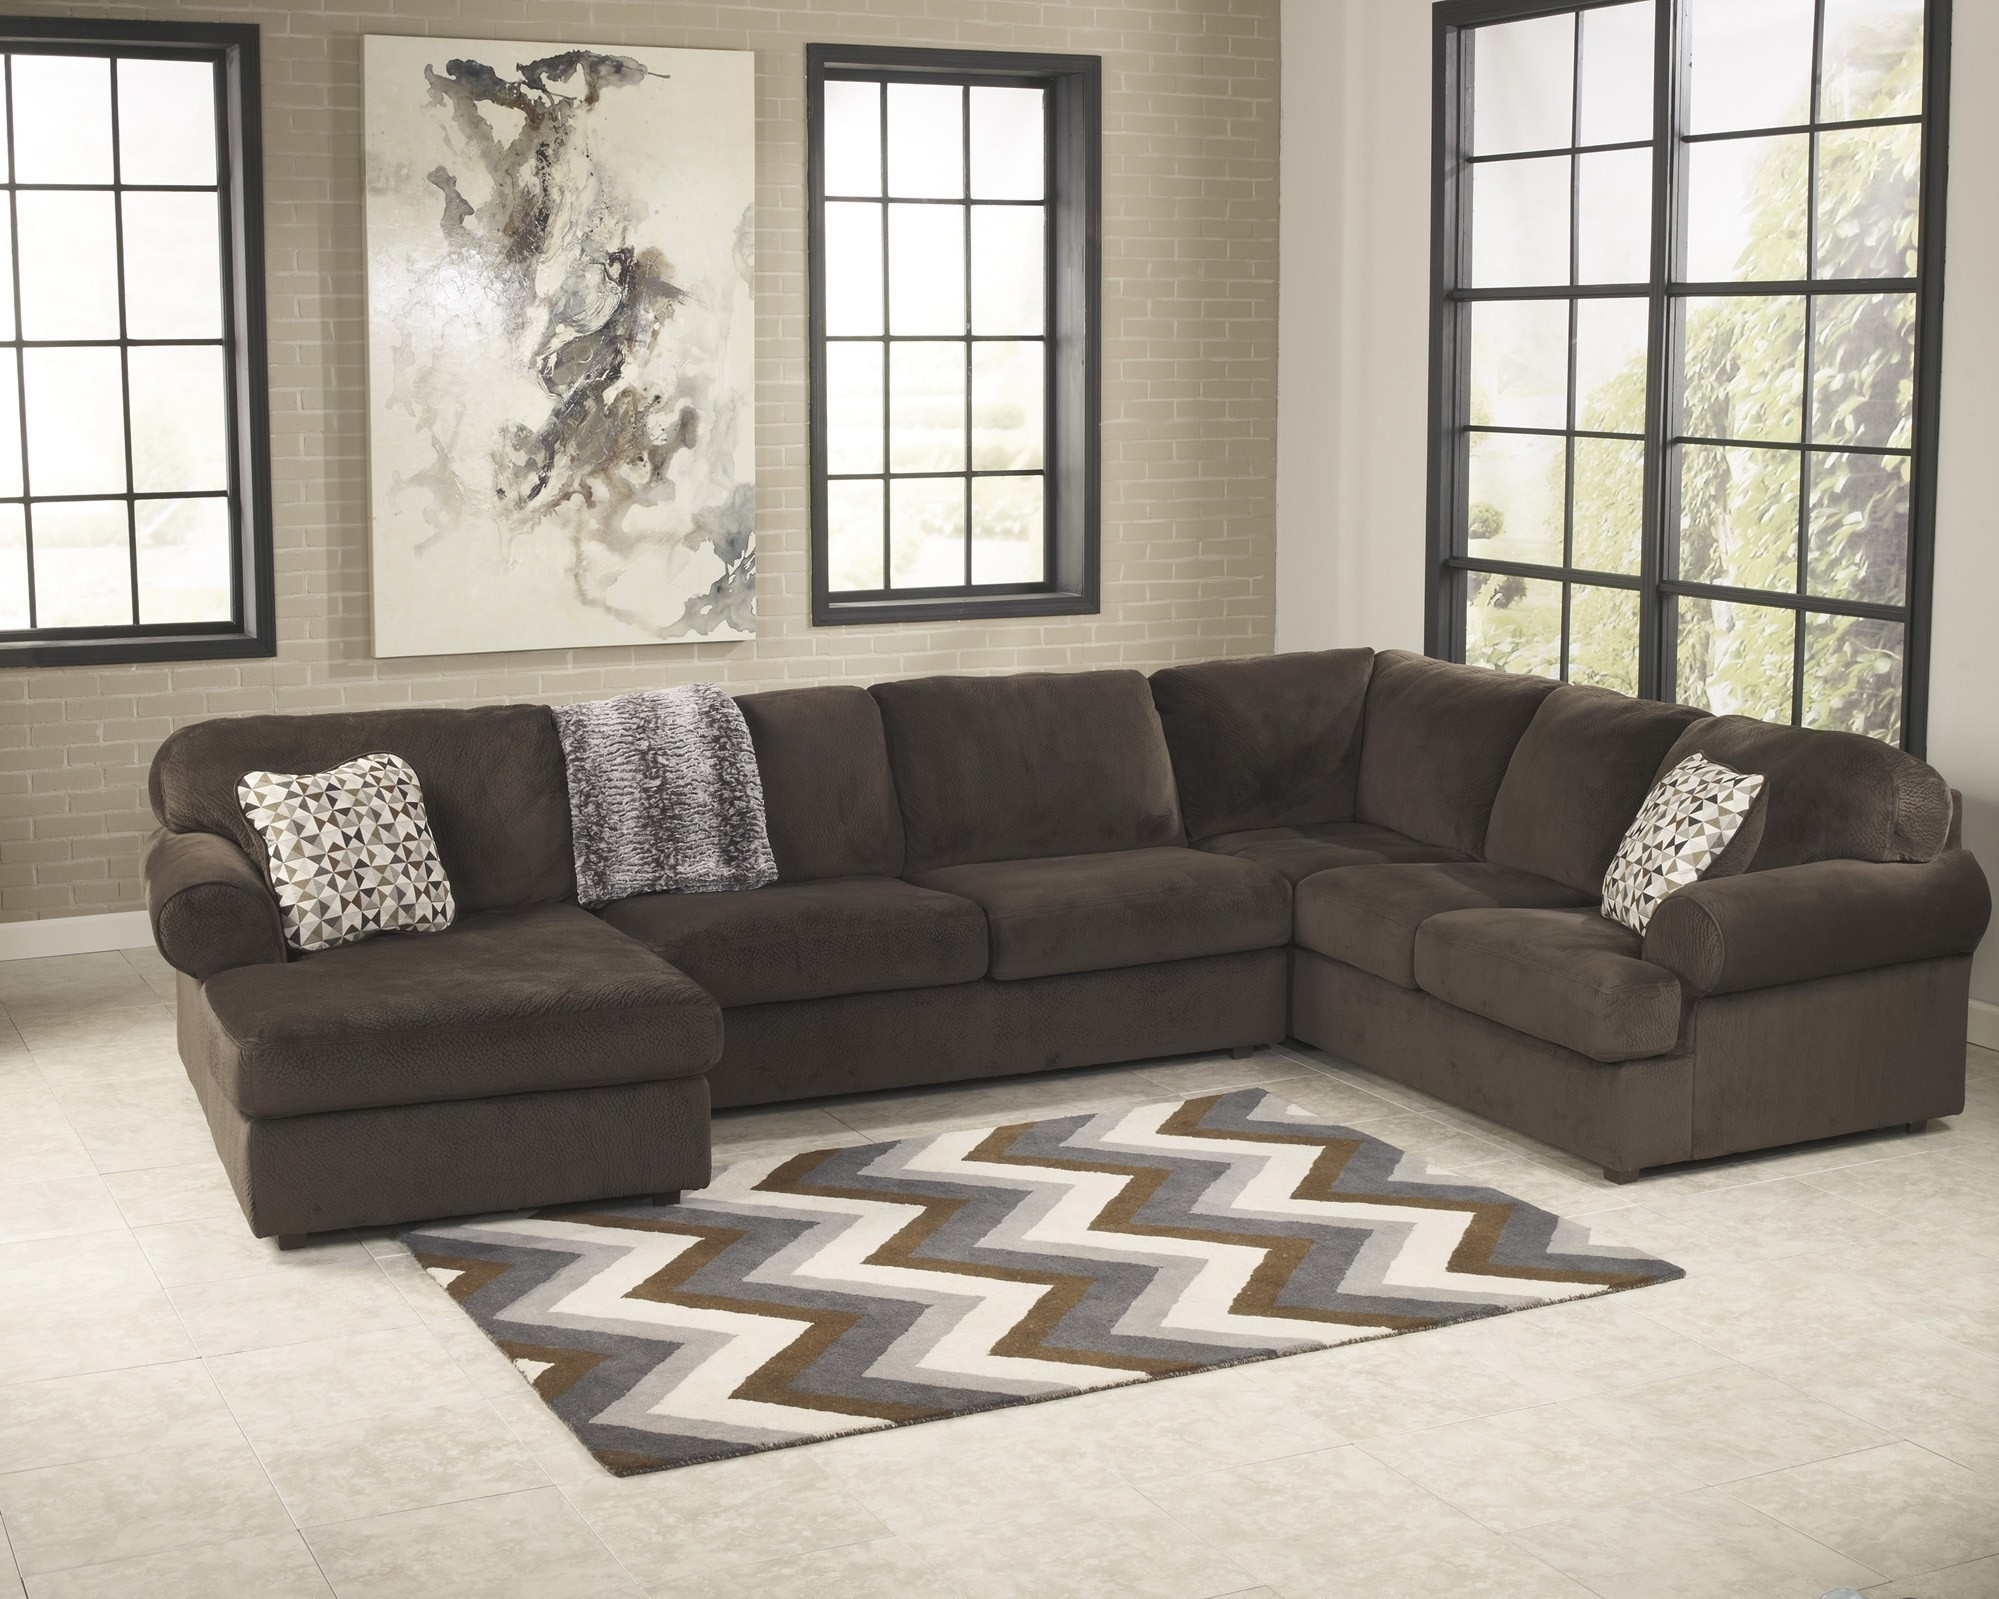 3 Piece Sectional Malbry Point W Laf Chaise Living Spaces 223533 0 pertaining to Malbry Point 3 Piece Sectionals With Raf Chaise